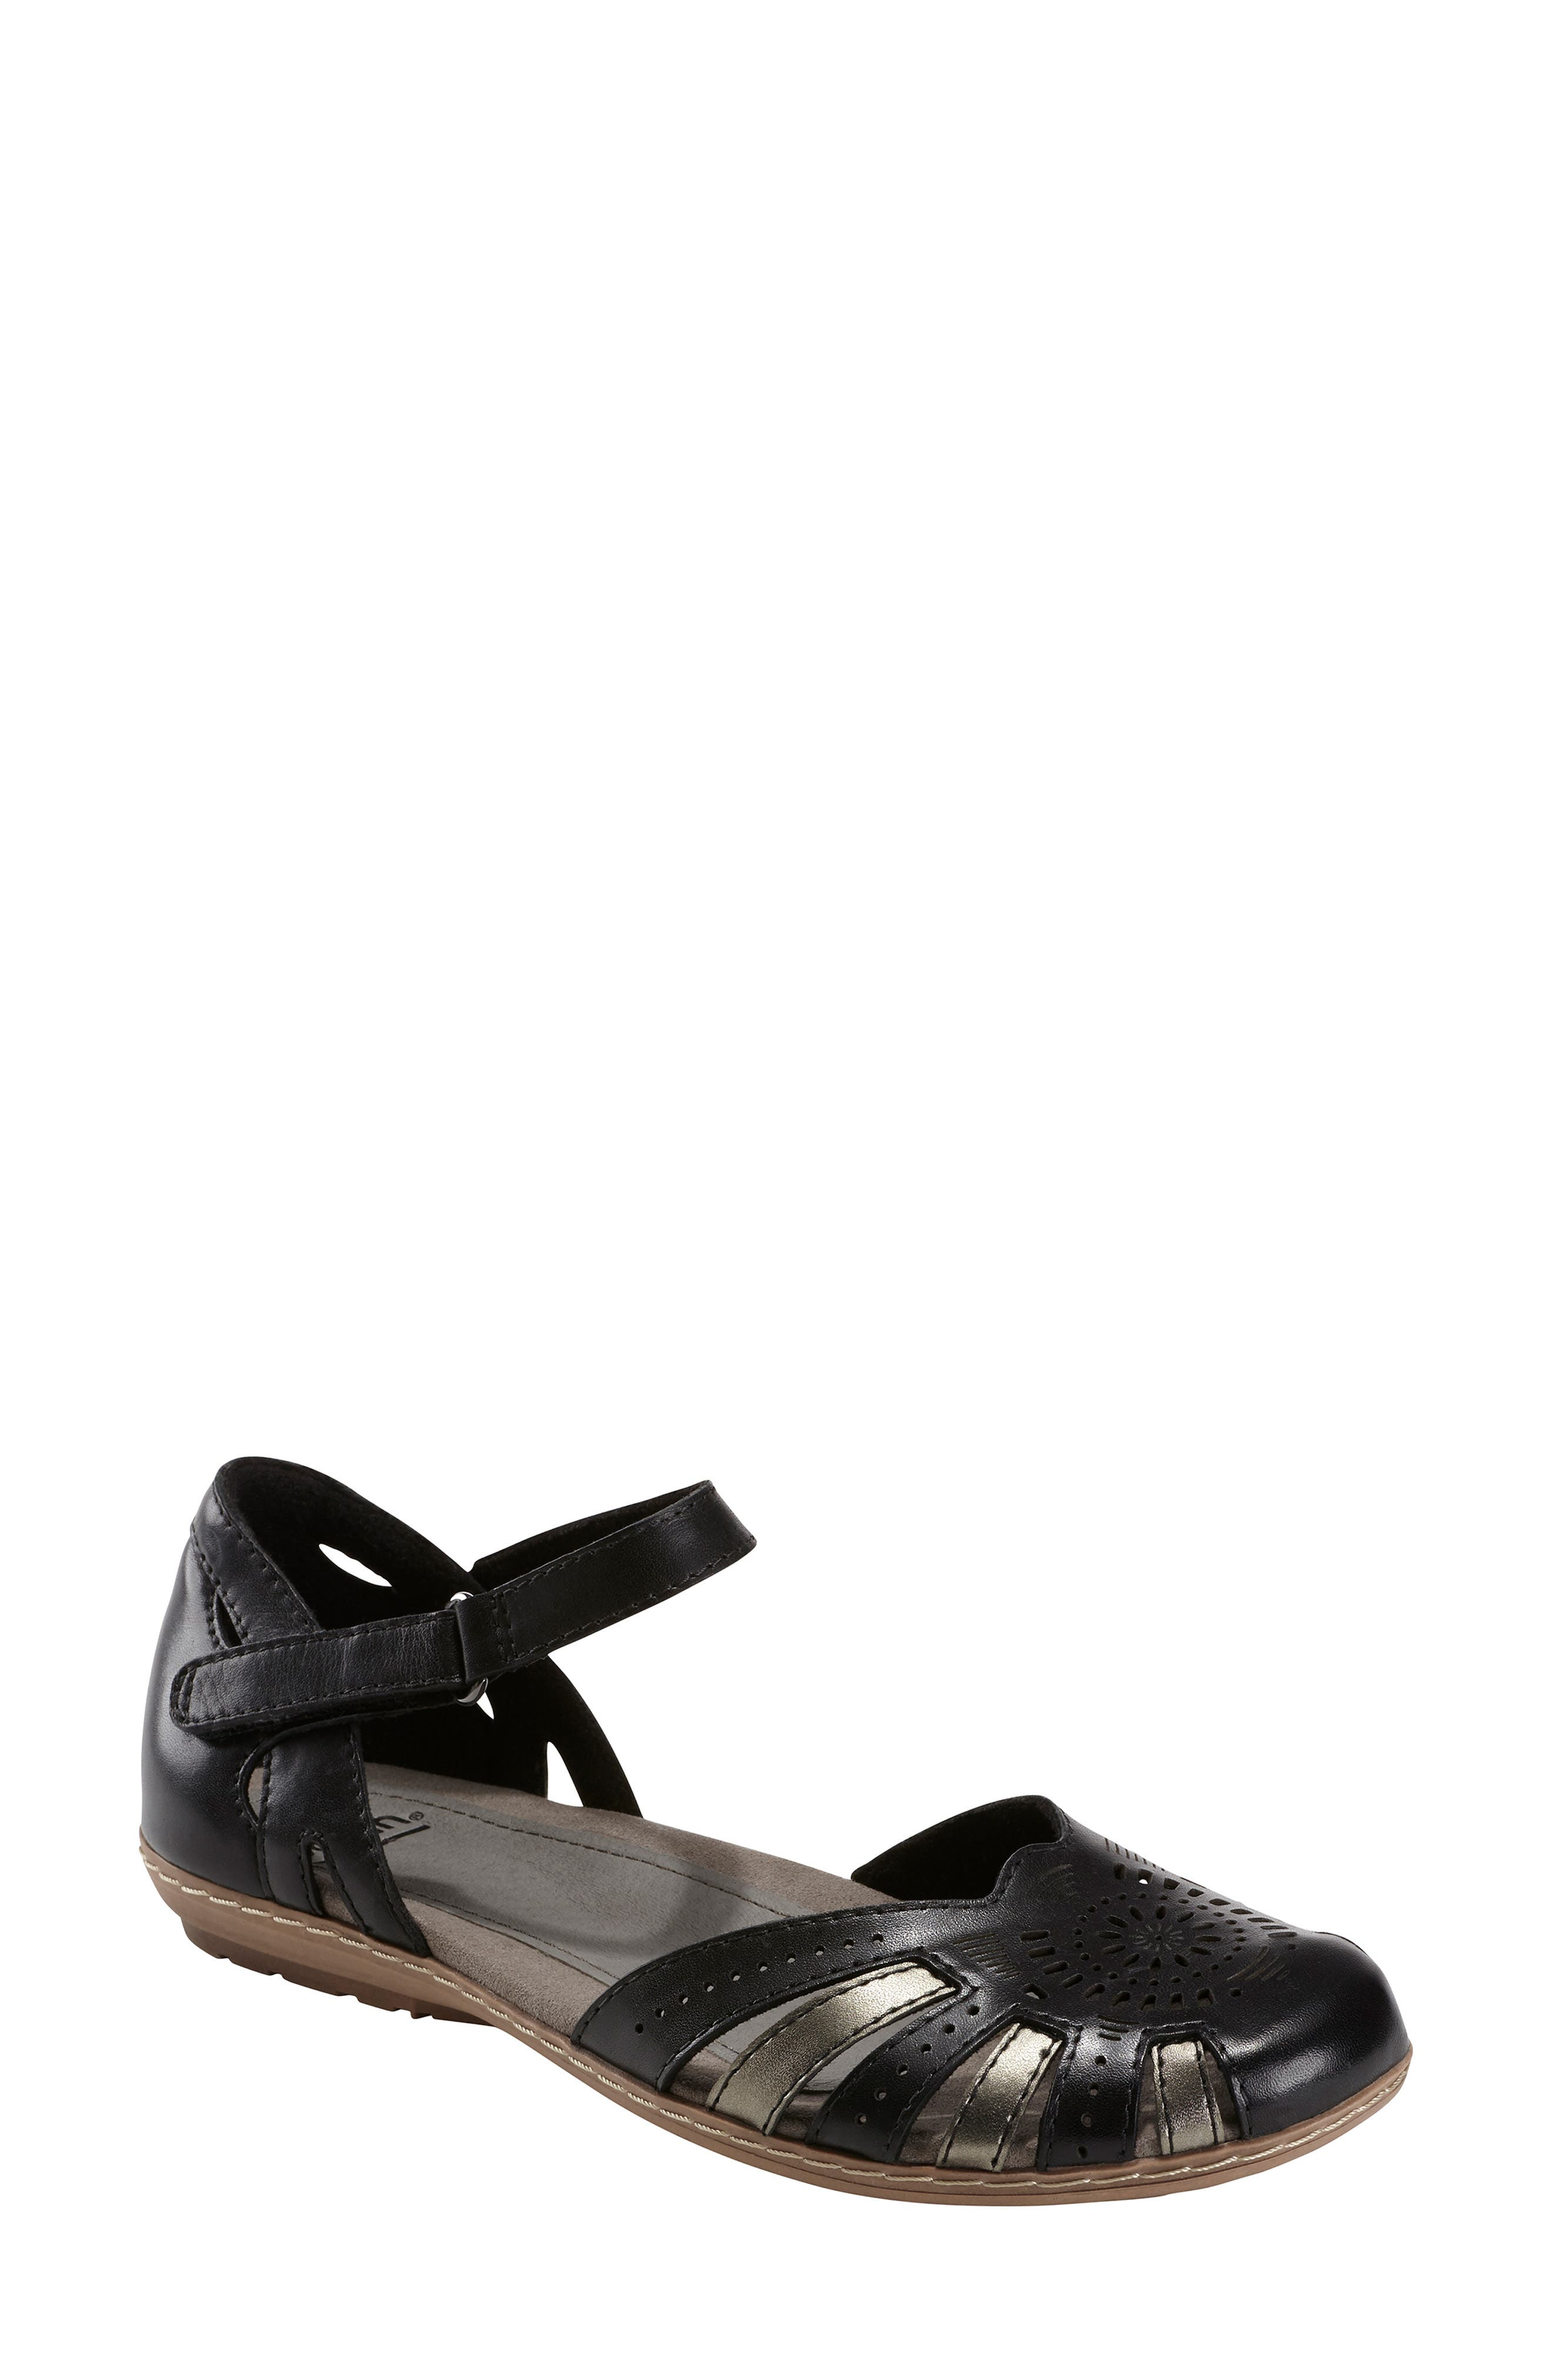 Cahoon Sandal, Main, color, BLACK LEATHER